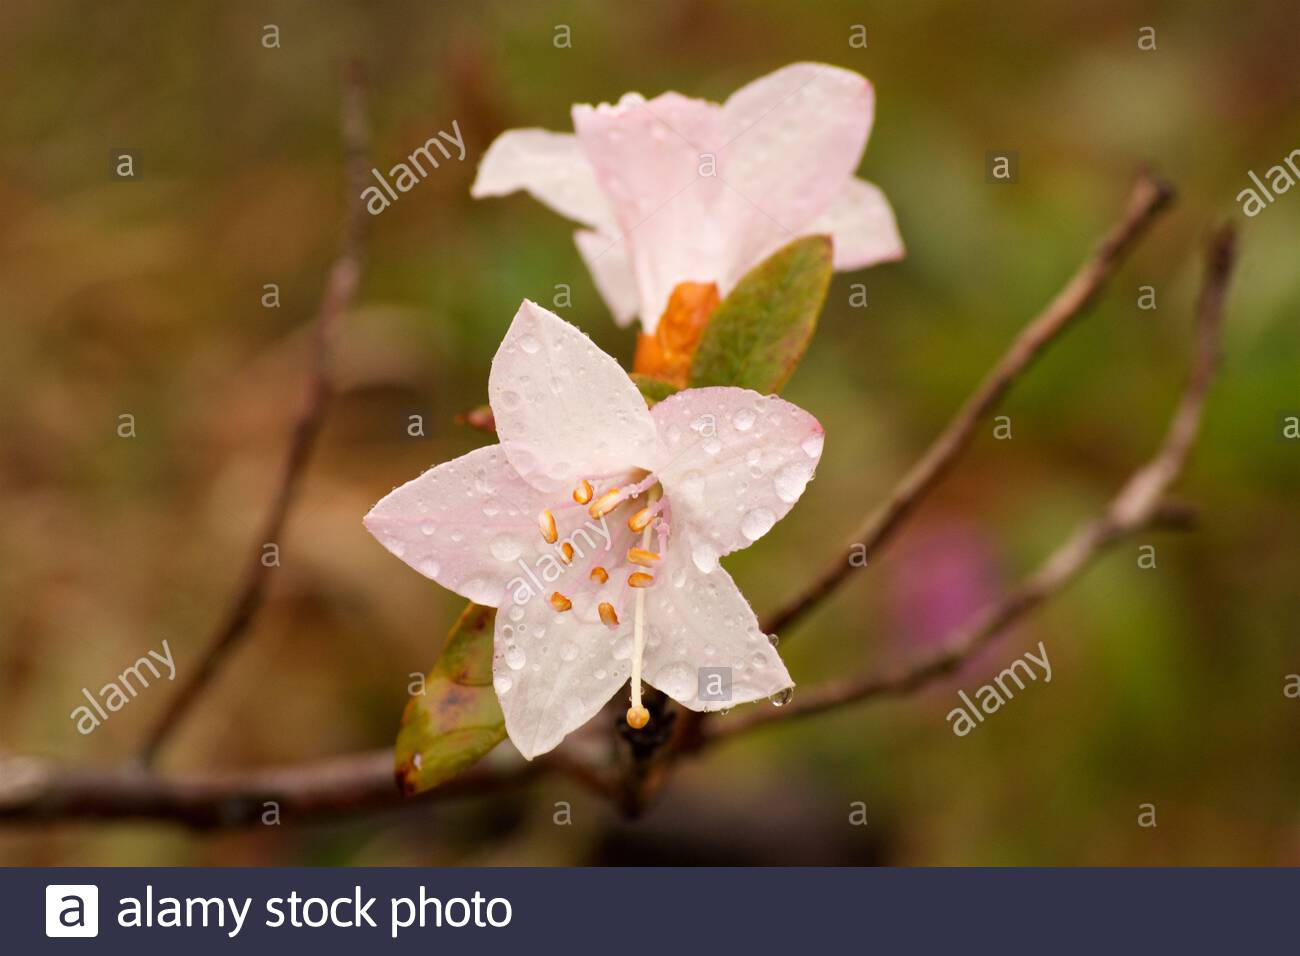 a-white-rhododendron-with-slightly-pink-hues-and-droplets-of-rain-in-bhutan-2B11Y8R.jpg